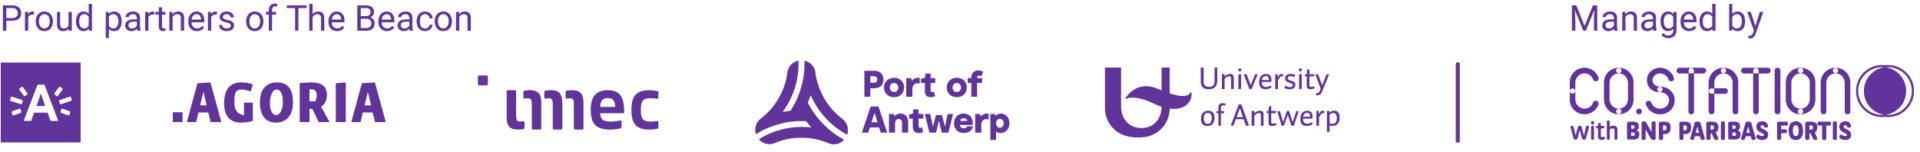 The Beacon Partners   An IoT coworking in Antwerp managed by Co.Station